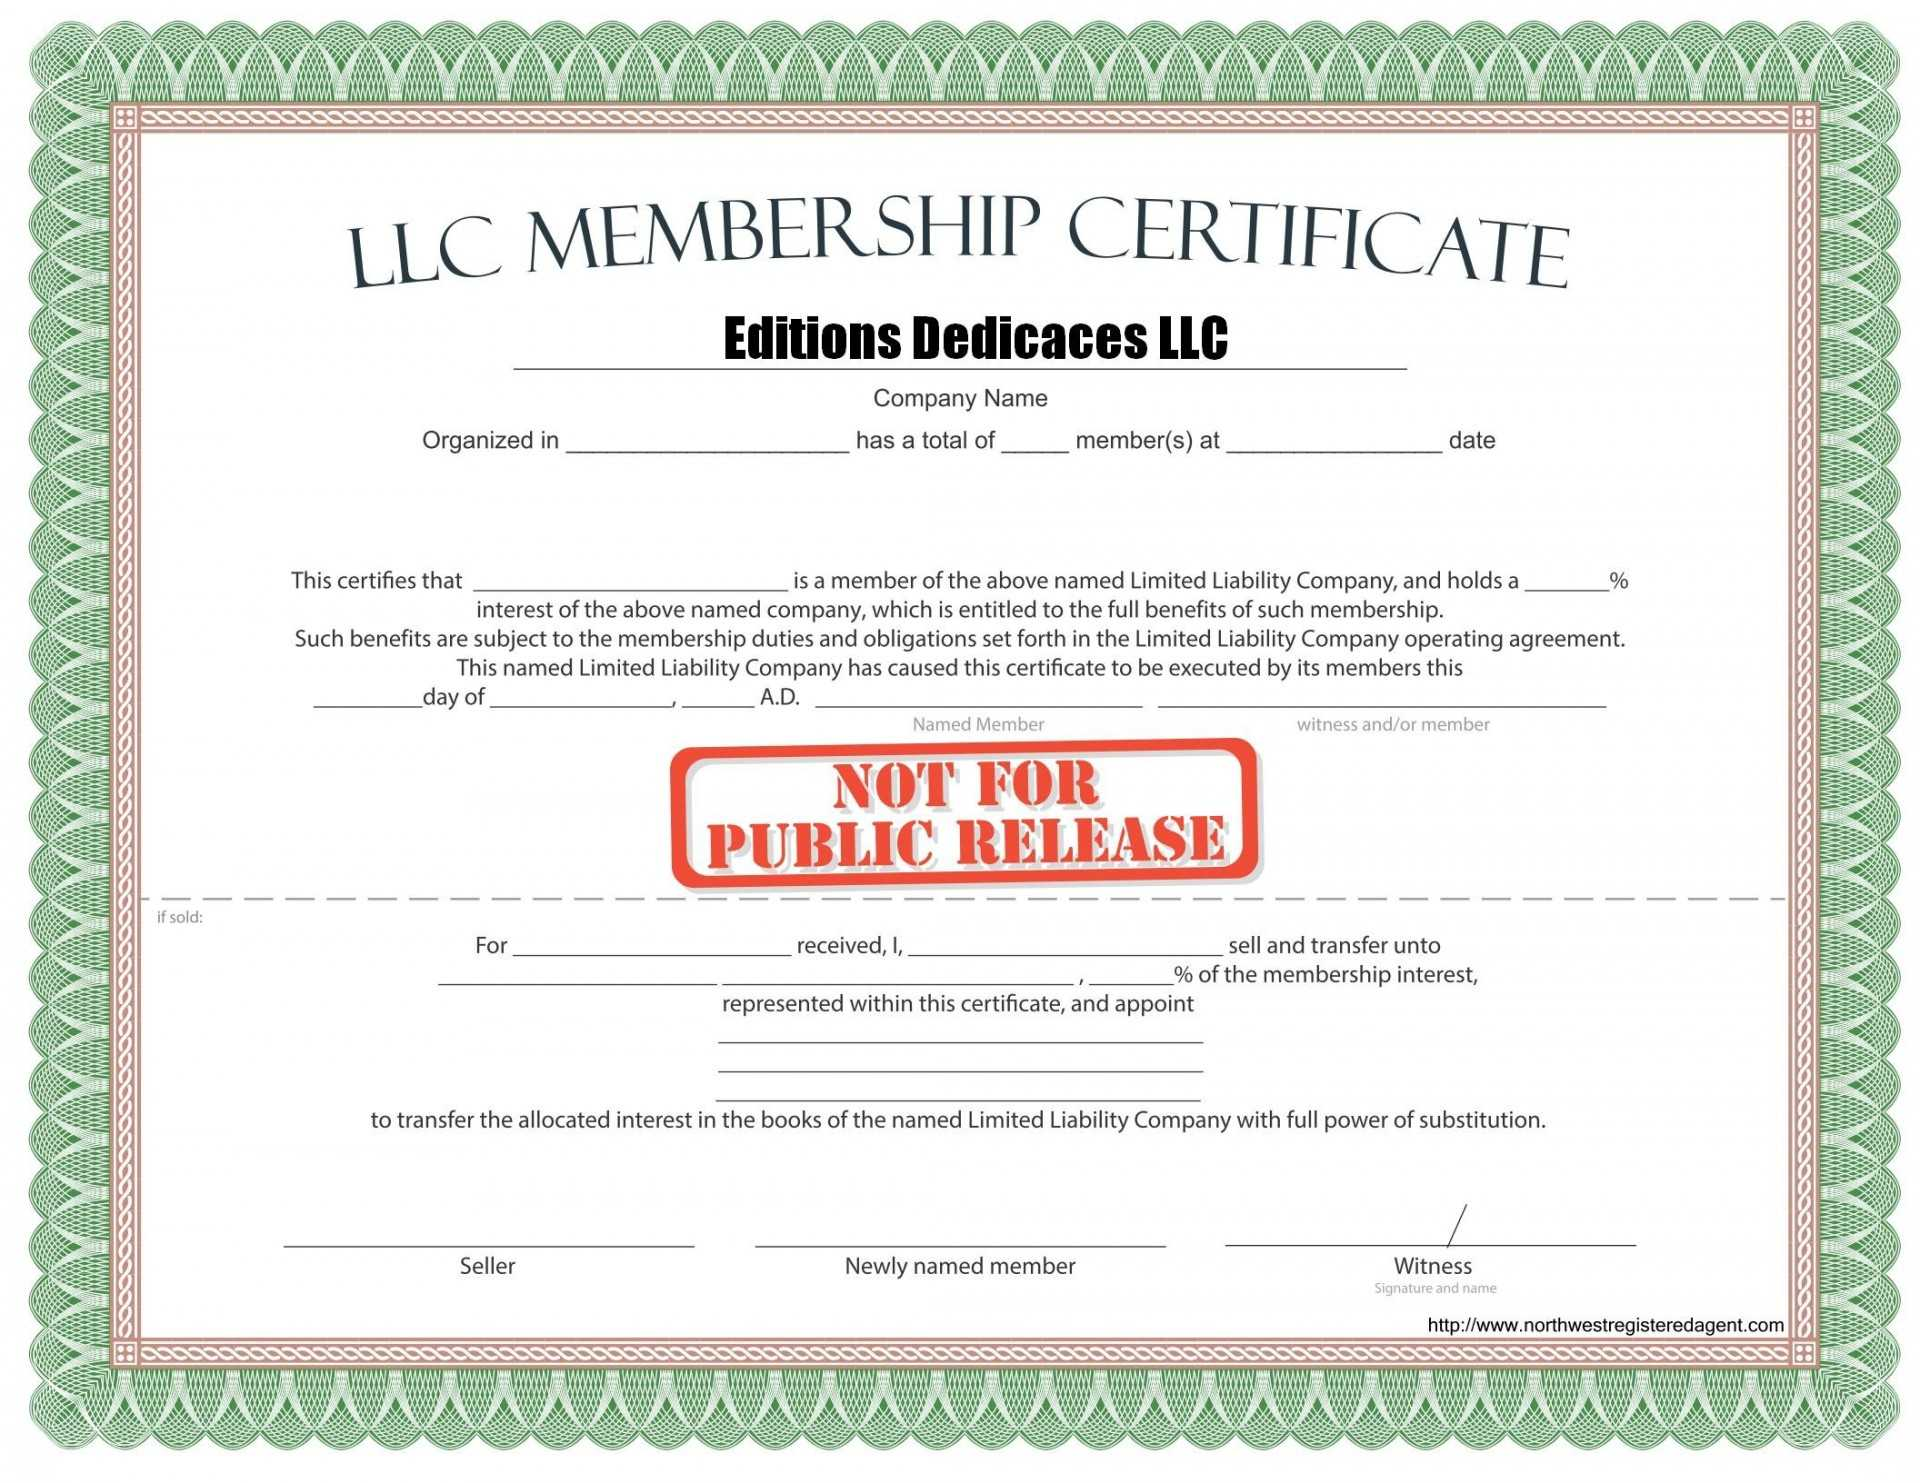 038 Llc Membership Certificate Template Best Solutions For Regarding Llc Membership Certificate Template Word